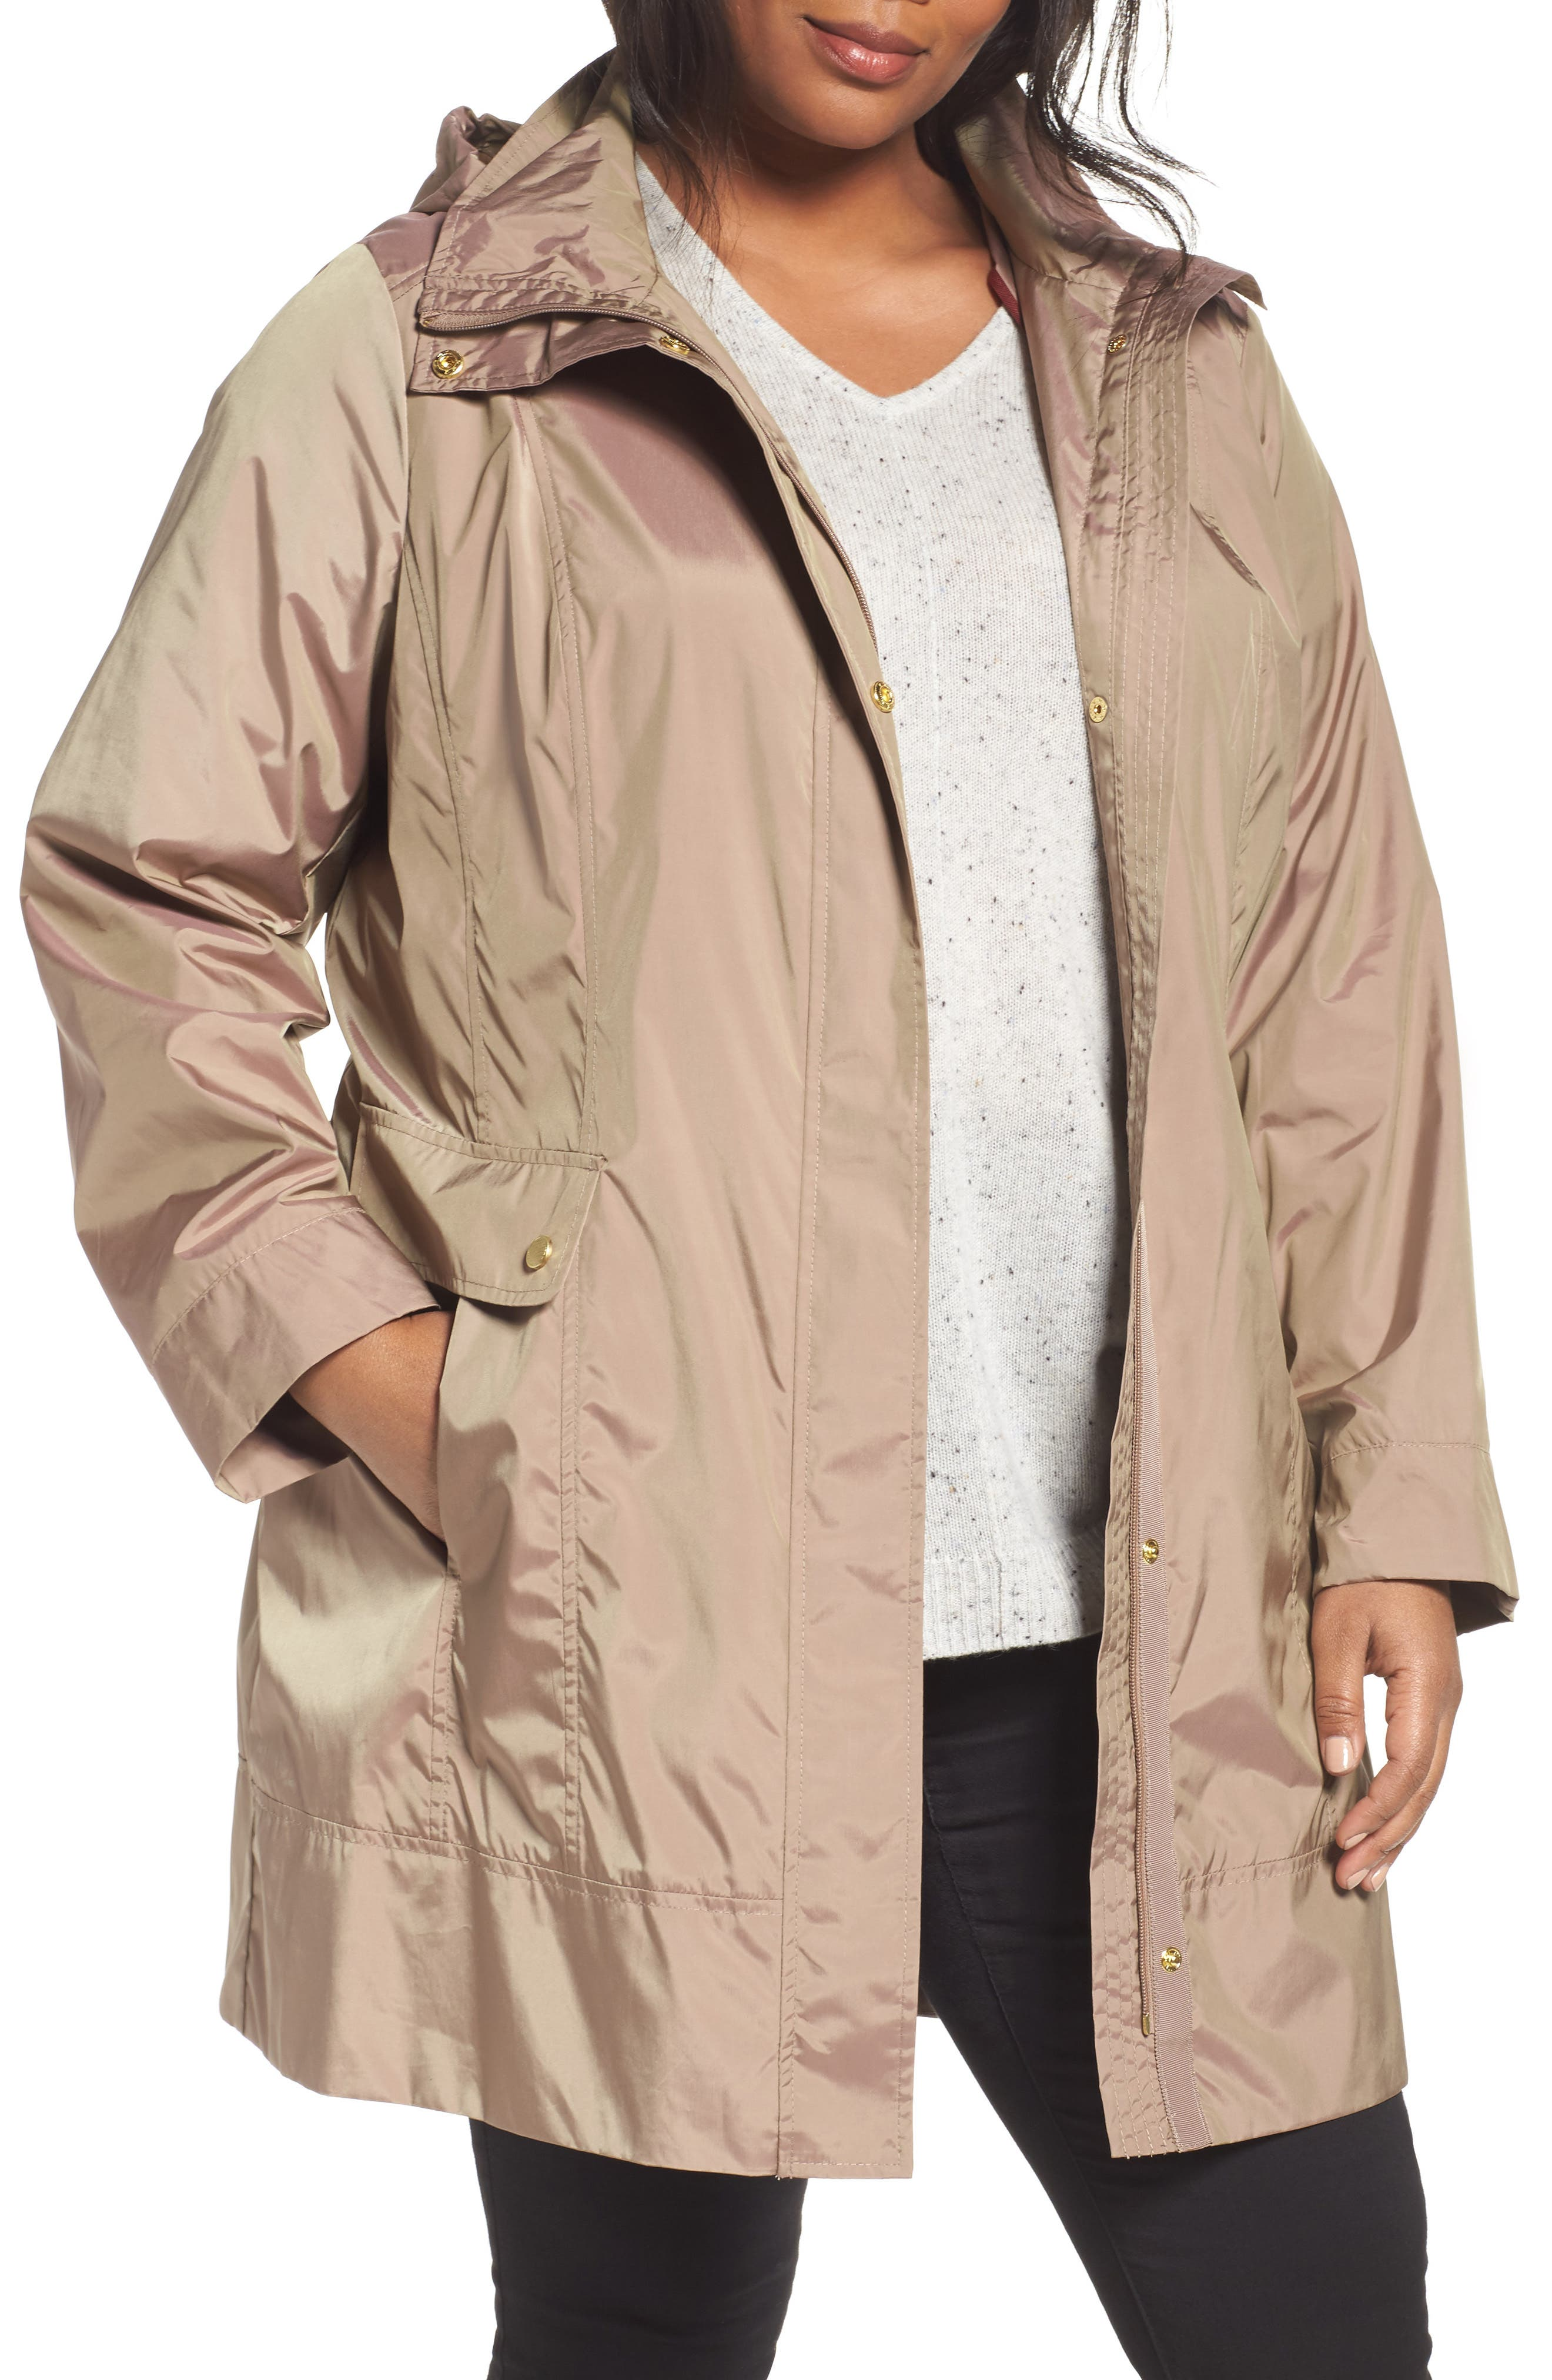 Cole Haan Water Resistant Rain Jacket,                         Main,                         color, Champagne